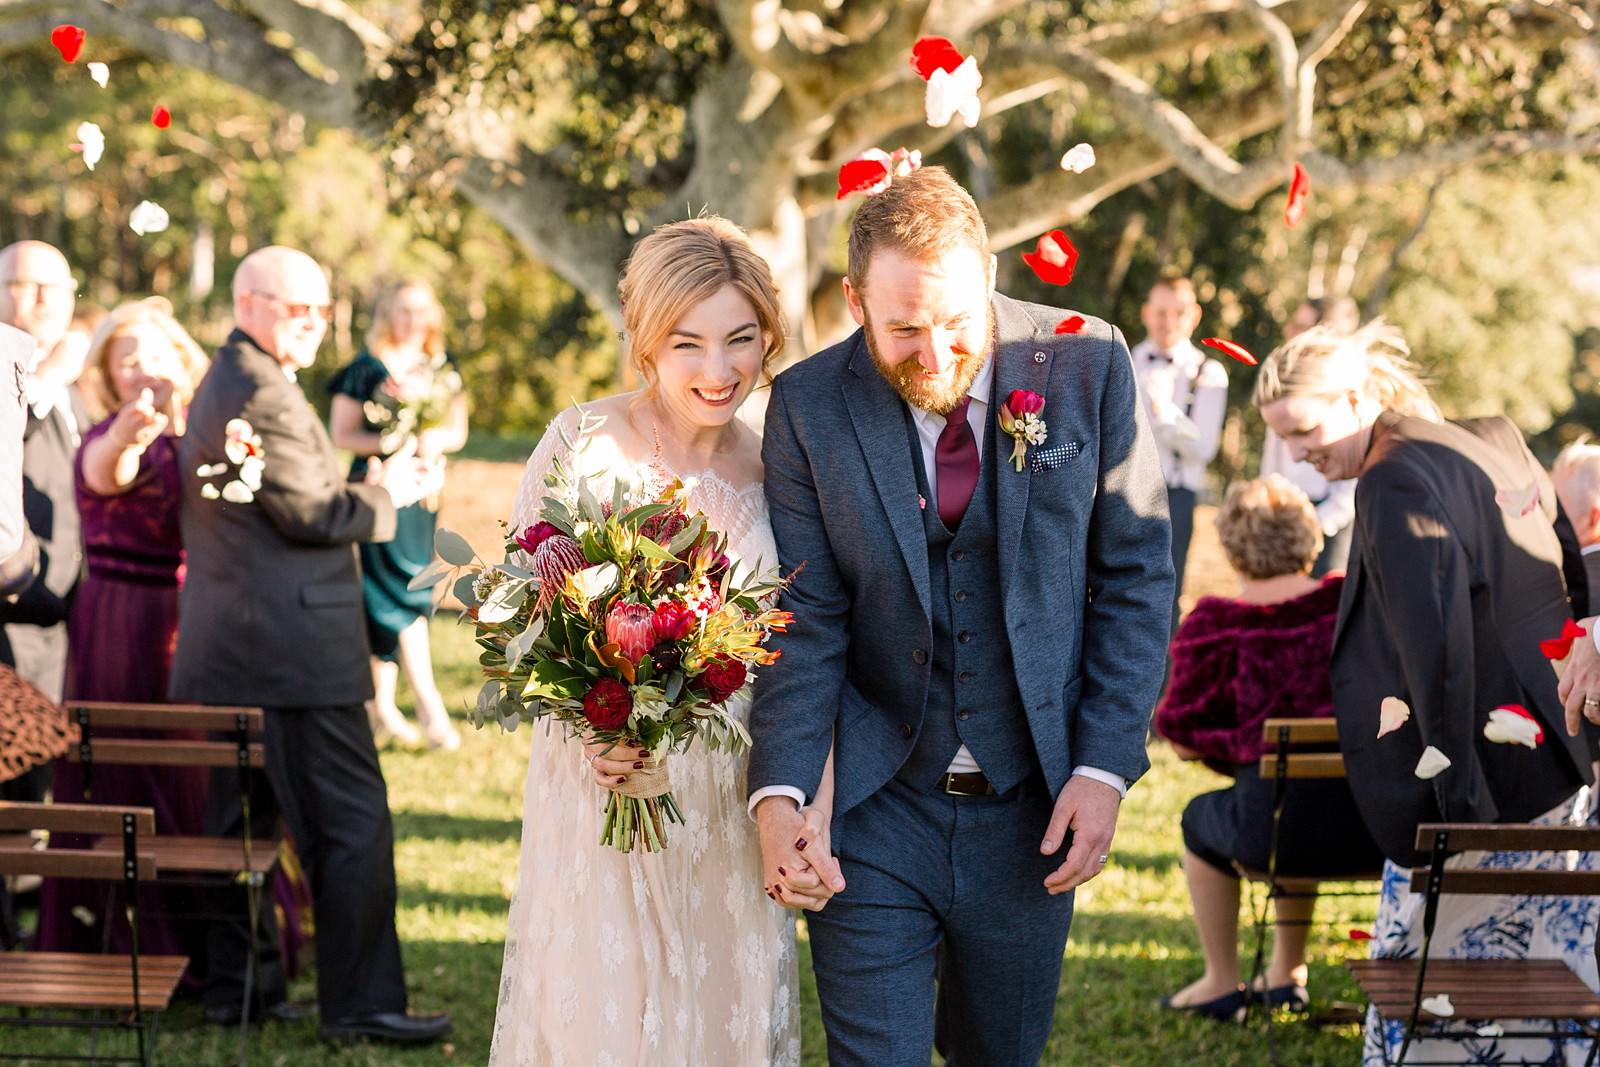 Yandina Station Wedding Photographer by Mario Colli